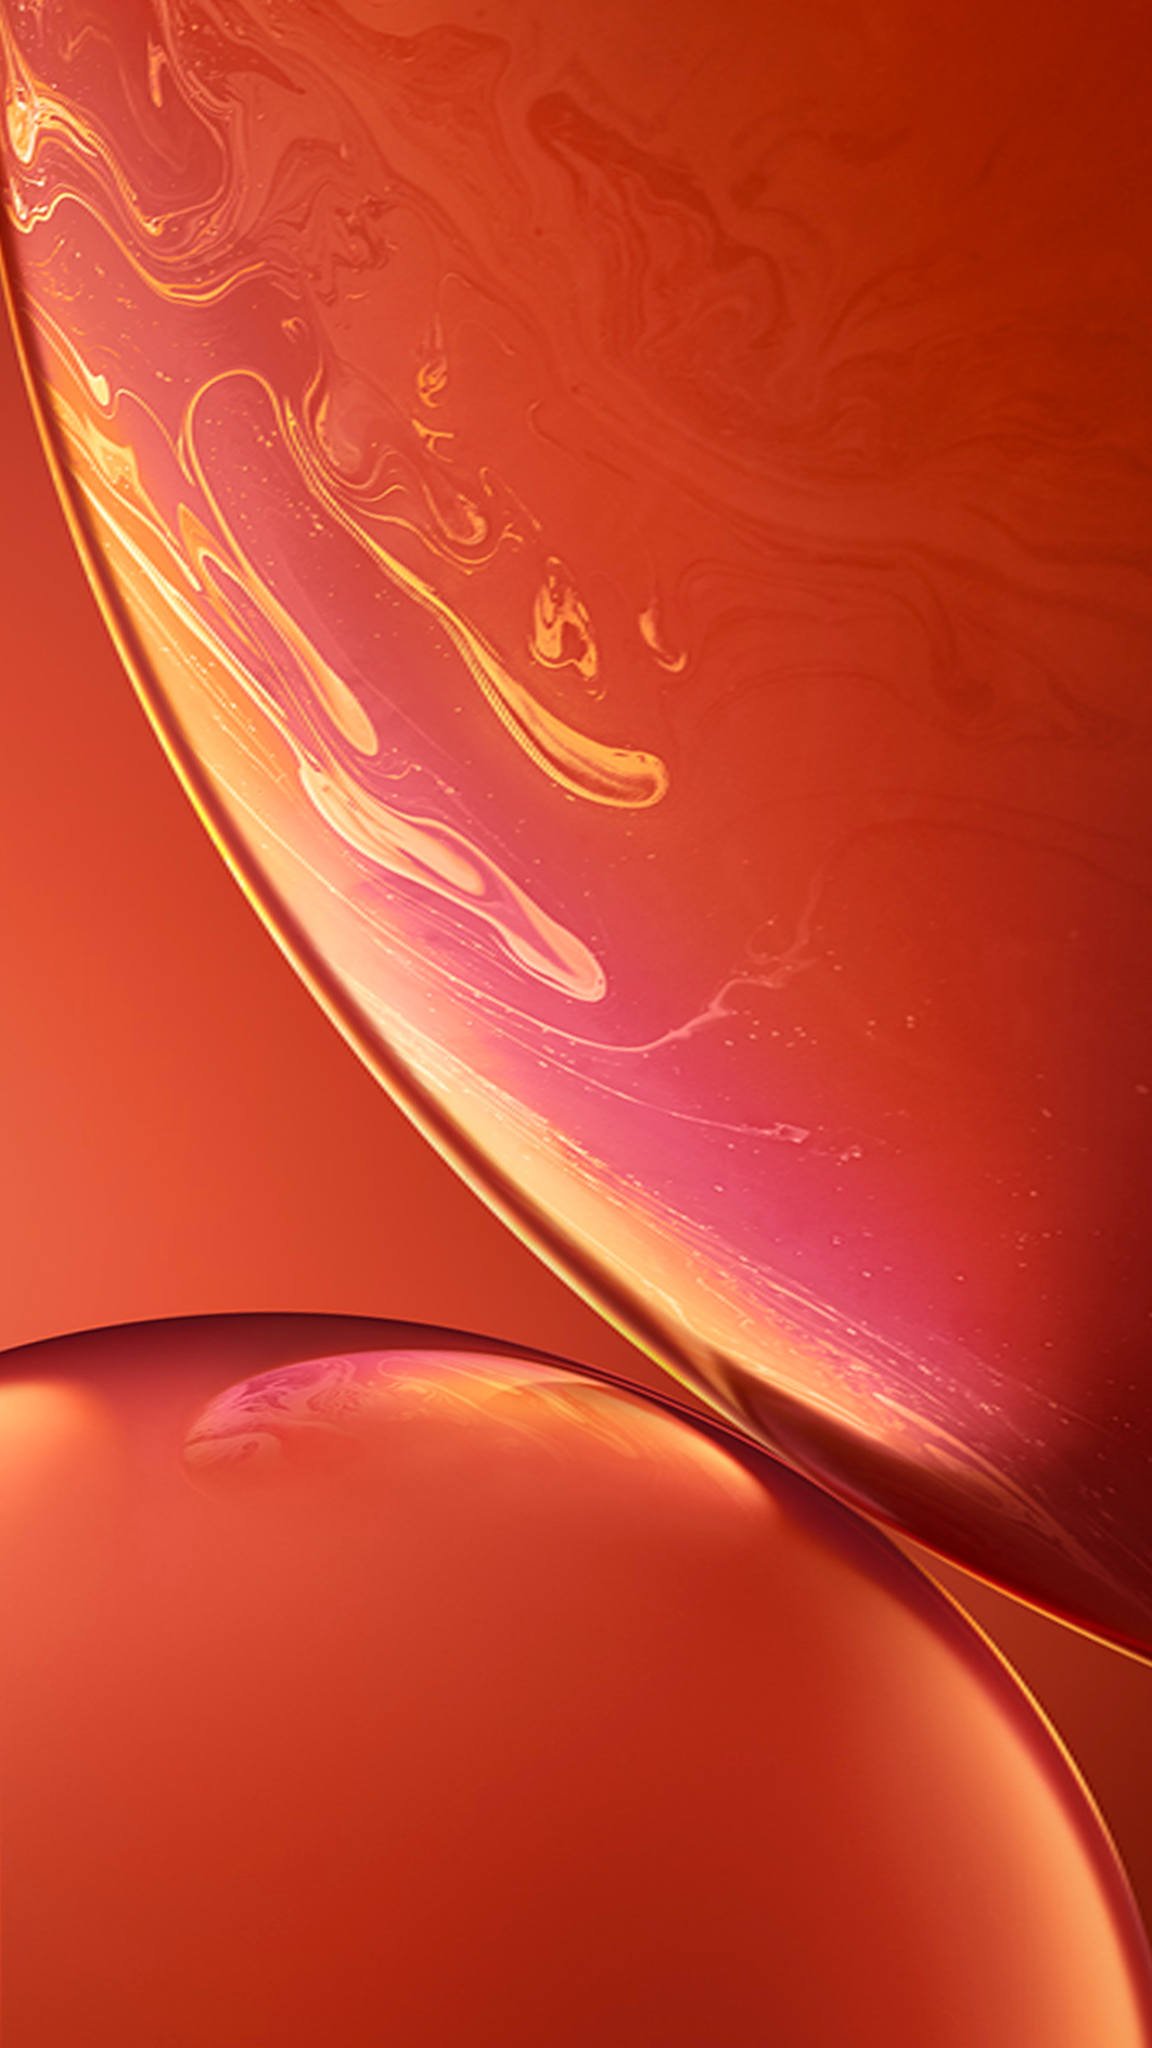 iPhone-XR-Wallpaper-TechFoogle-03